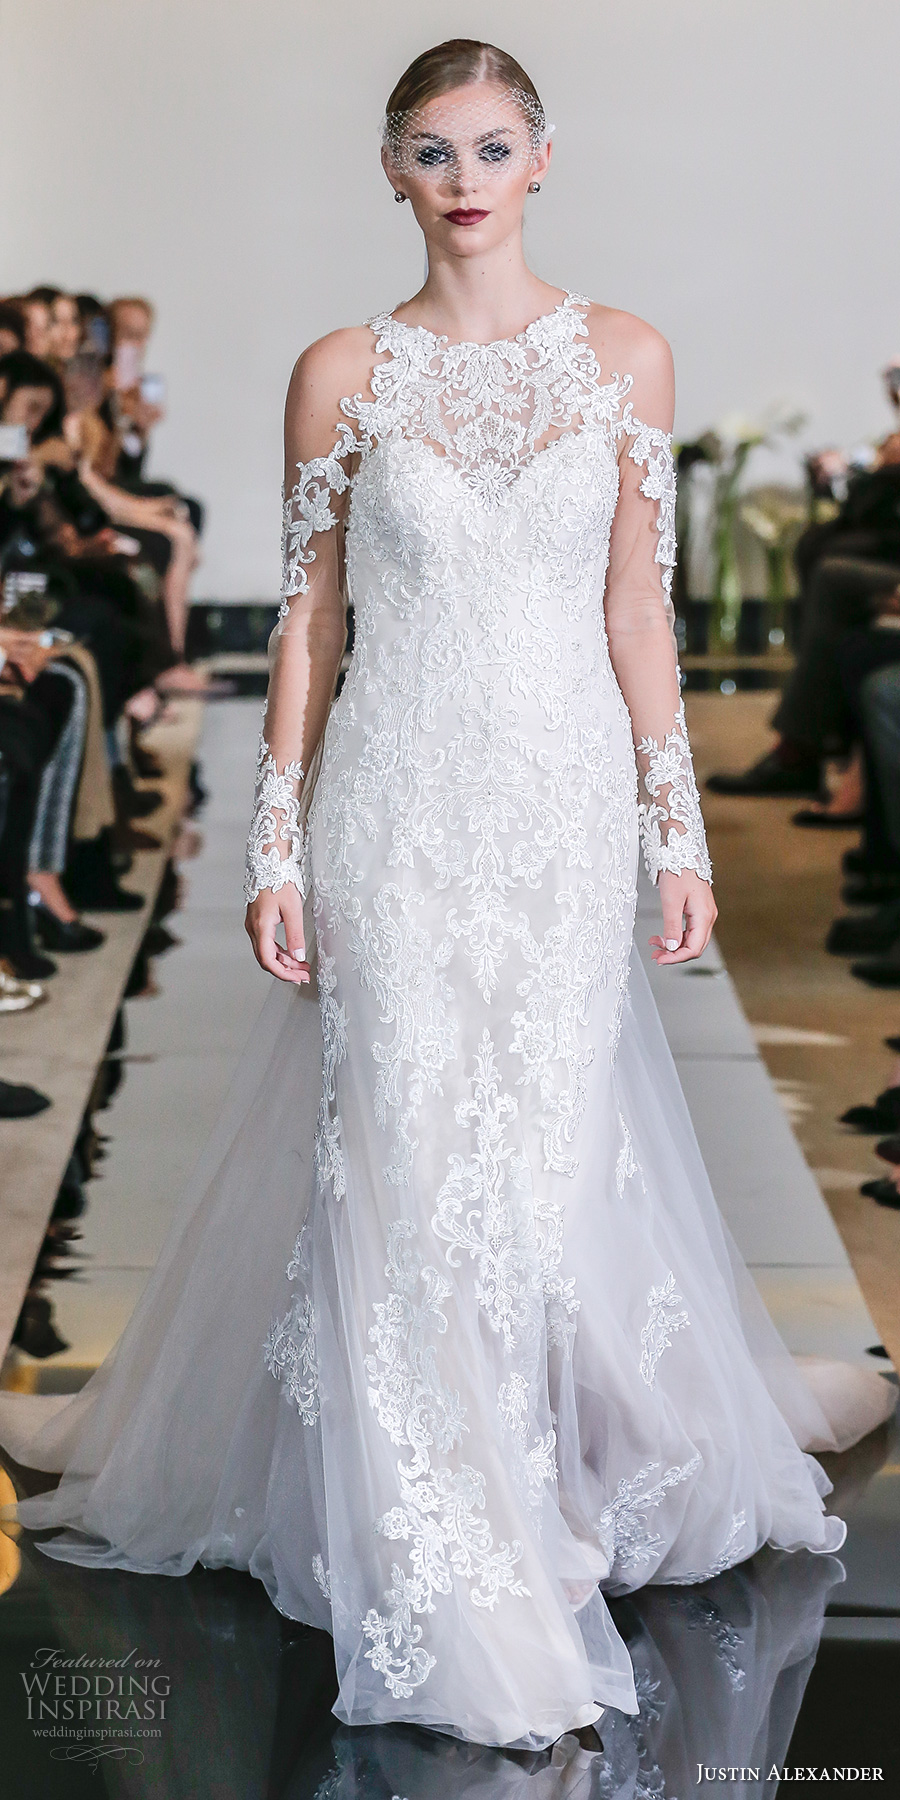 justin alexander spring 2018 bridal long sleeves illusion jewel sweetheart neckline full embellishement elegant sheath wedding dress chapel train (22) mv